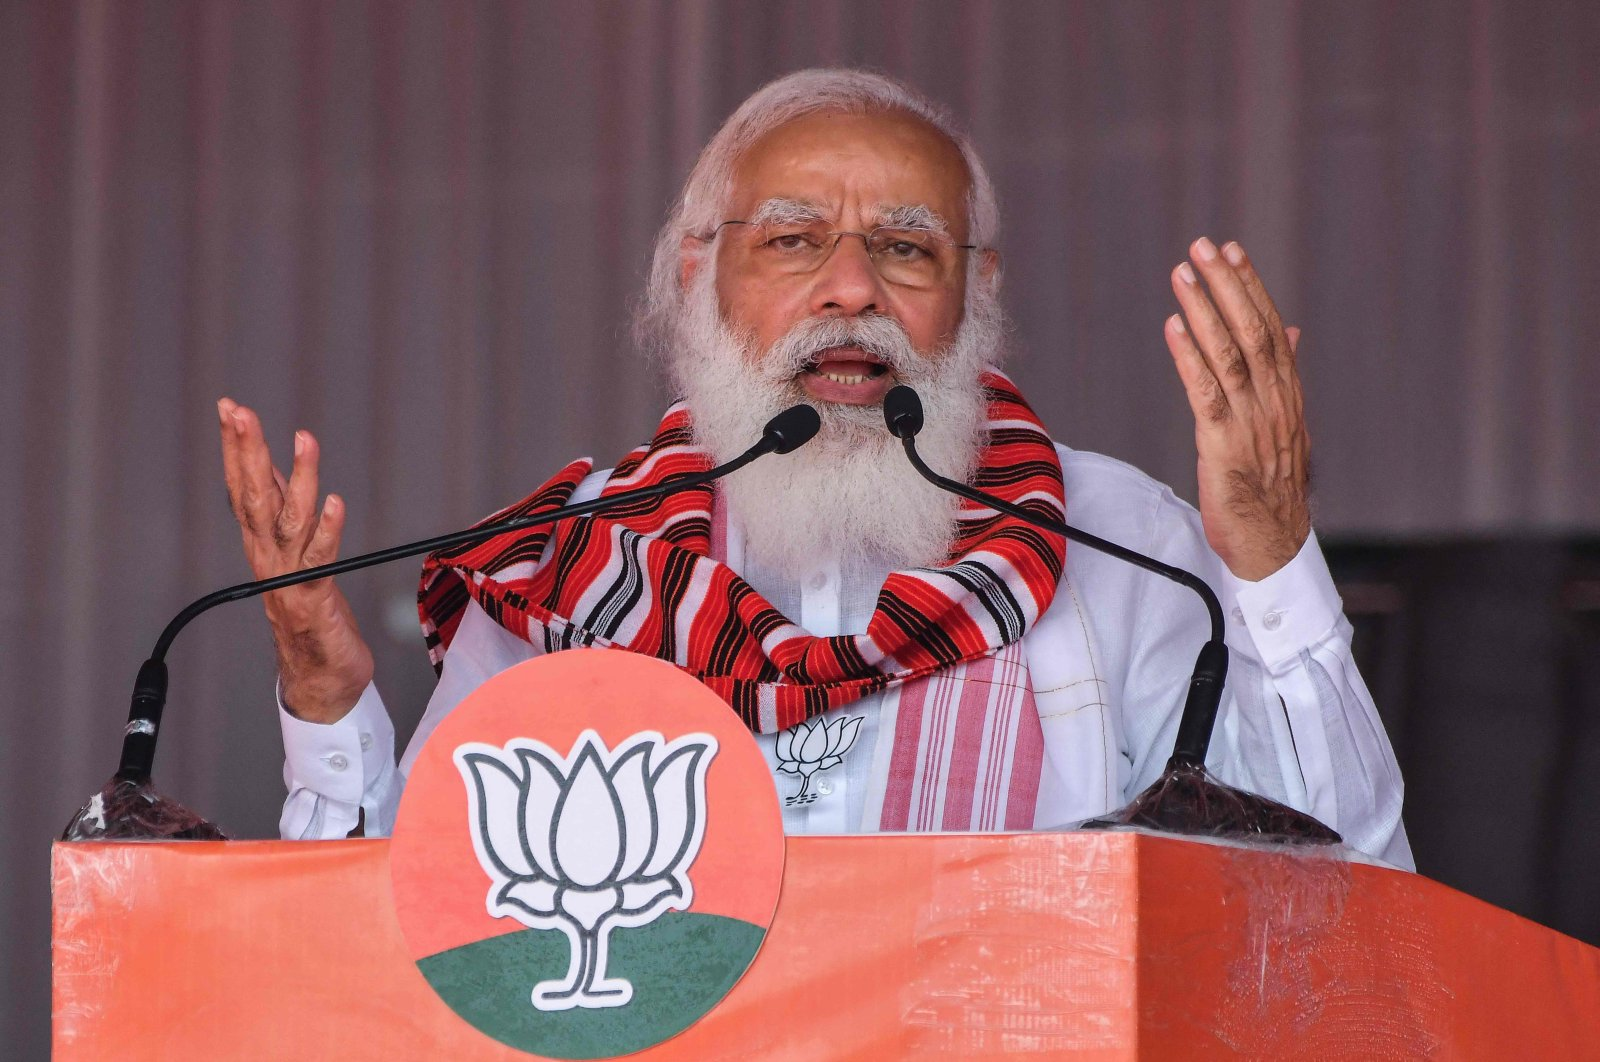 India's Prime Minister Narendra Modi gestures as he addresses a public meeting ahead of Assam Assembly elections, in Bokakhat, India, March 21, 2021. (AFP)